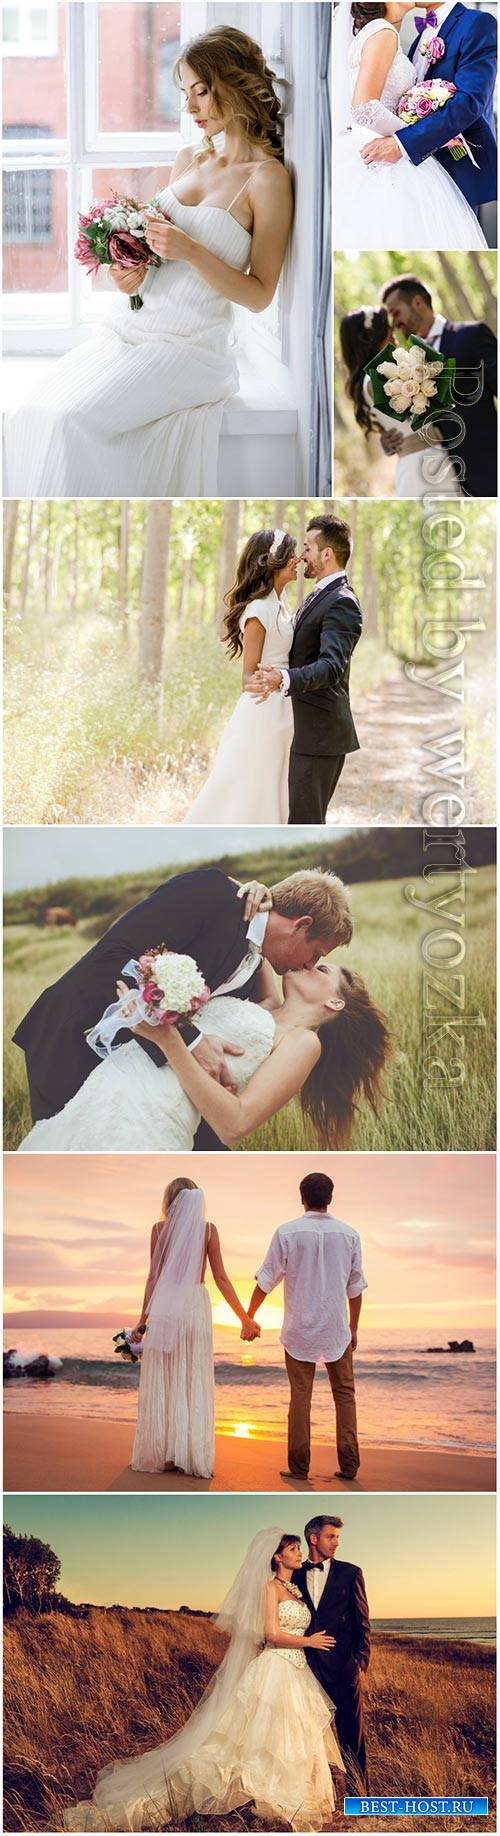 Wedding, couples in love, bride and groom stock photo